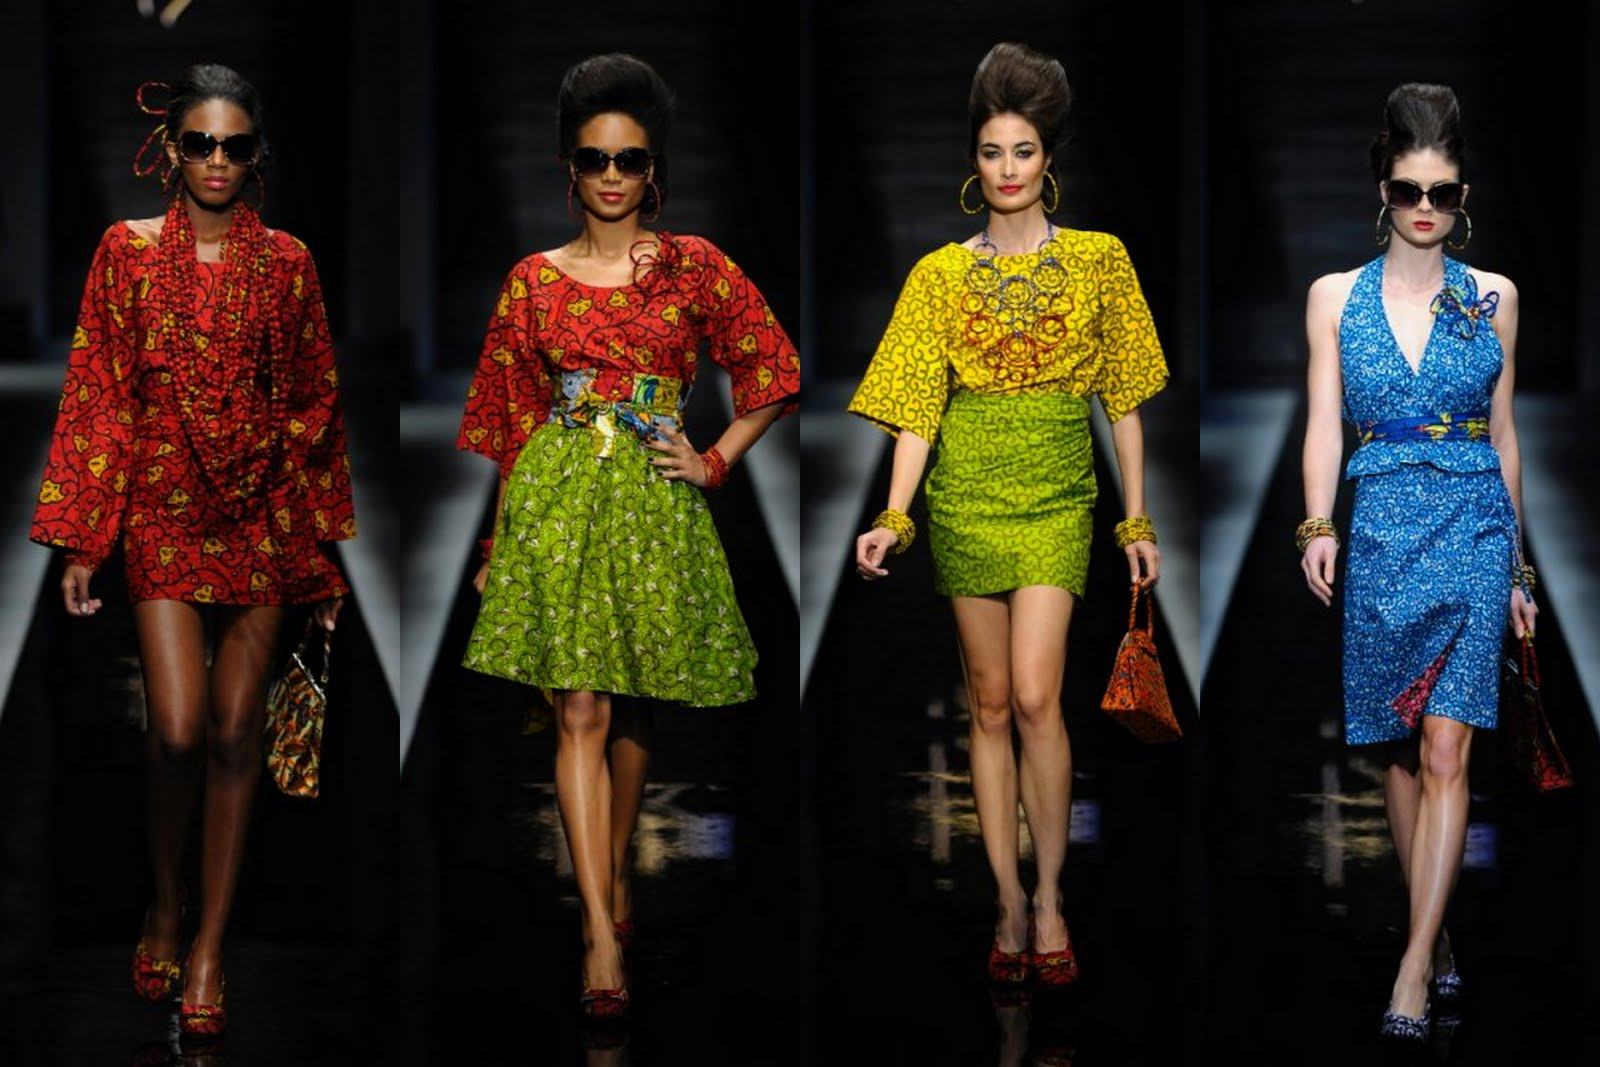 STYLE NOTES: Ituen Basi//Nigeria [DAY 1, Africa Fashion Week 2010]